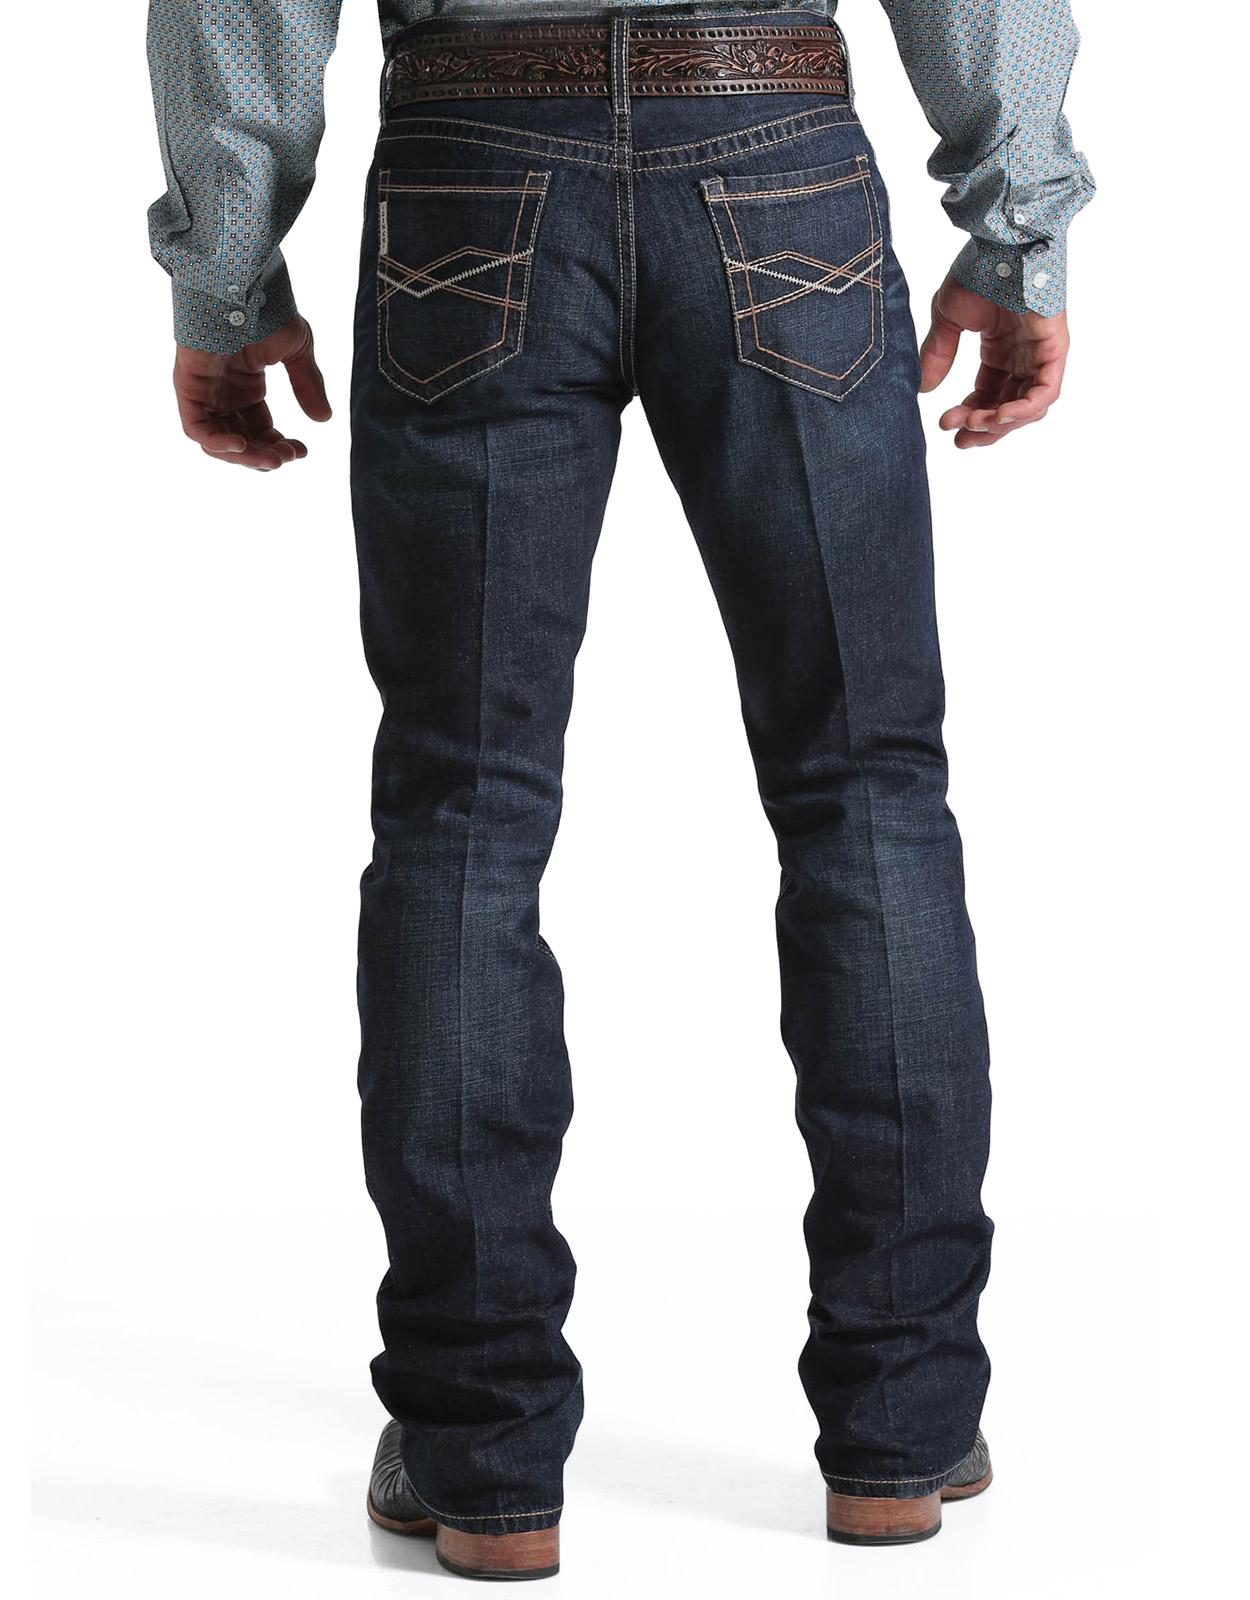 Cinch Menu0026#39;s Ian Mid Rise Slim Fit Boot Cut Jeans - Rinse